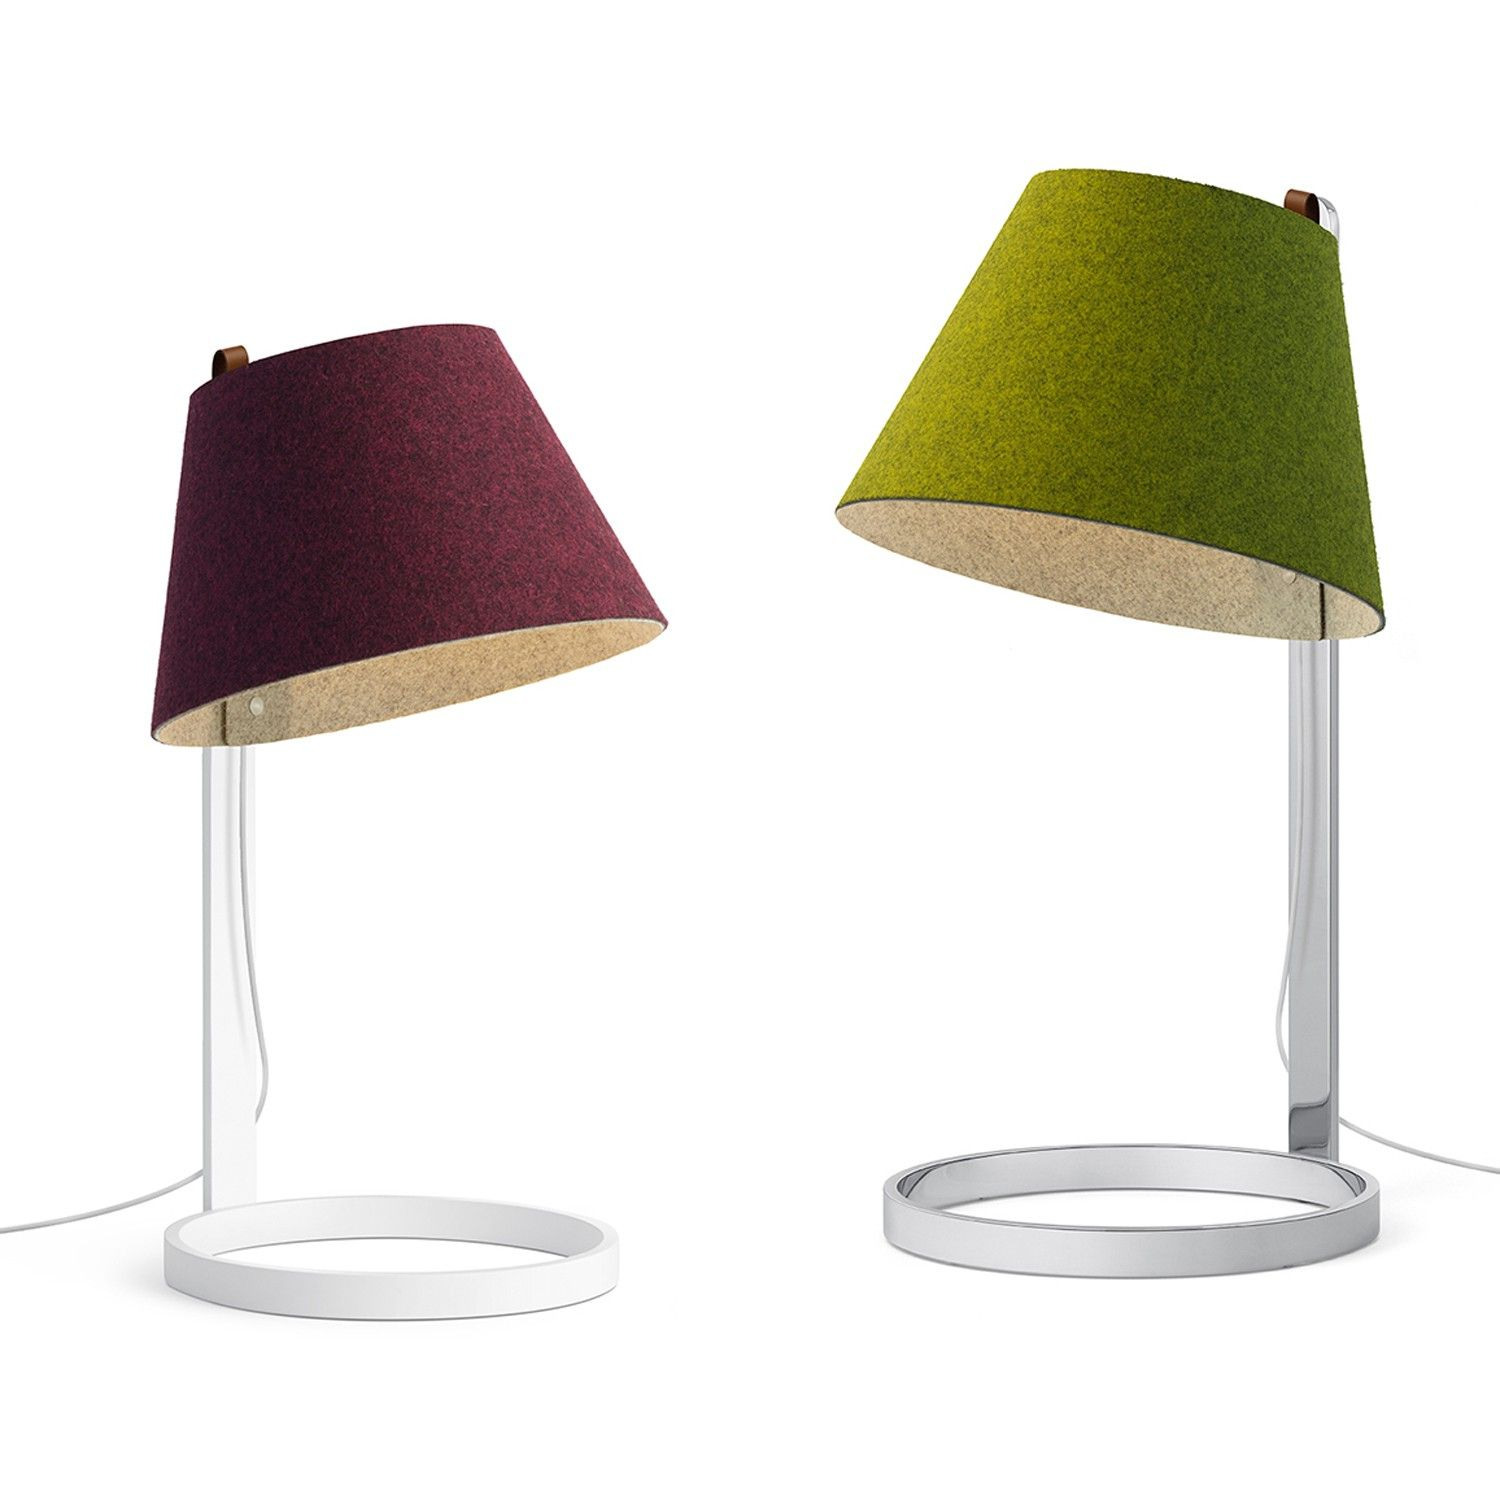 Top 10 Table Lamps by Pablo + Giveaway #ledtechnology